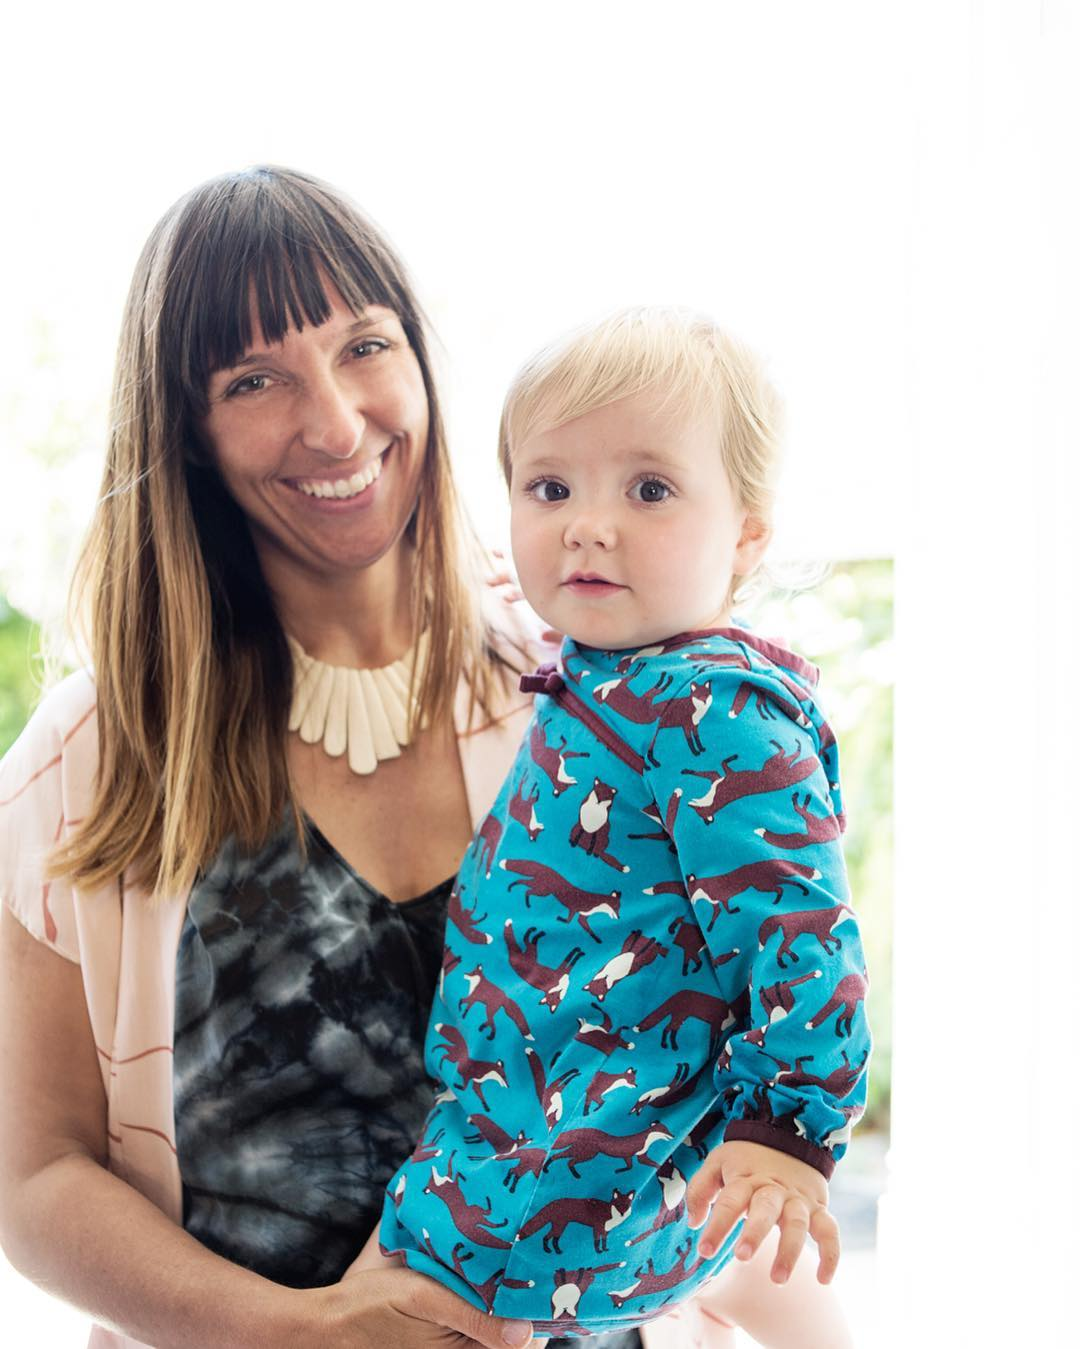 Happy birthday weekend to Seea designer Amanda Chinchelli, the seeababe that started it all!